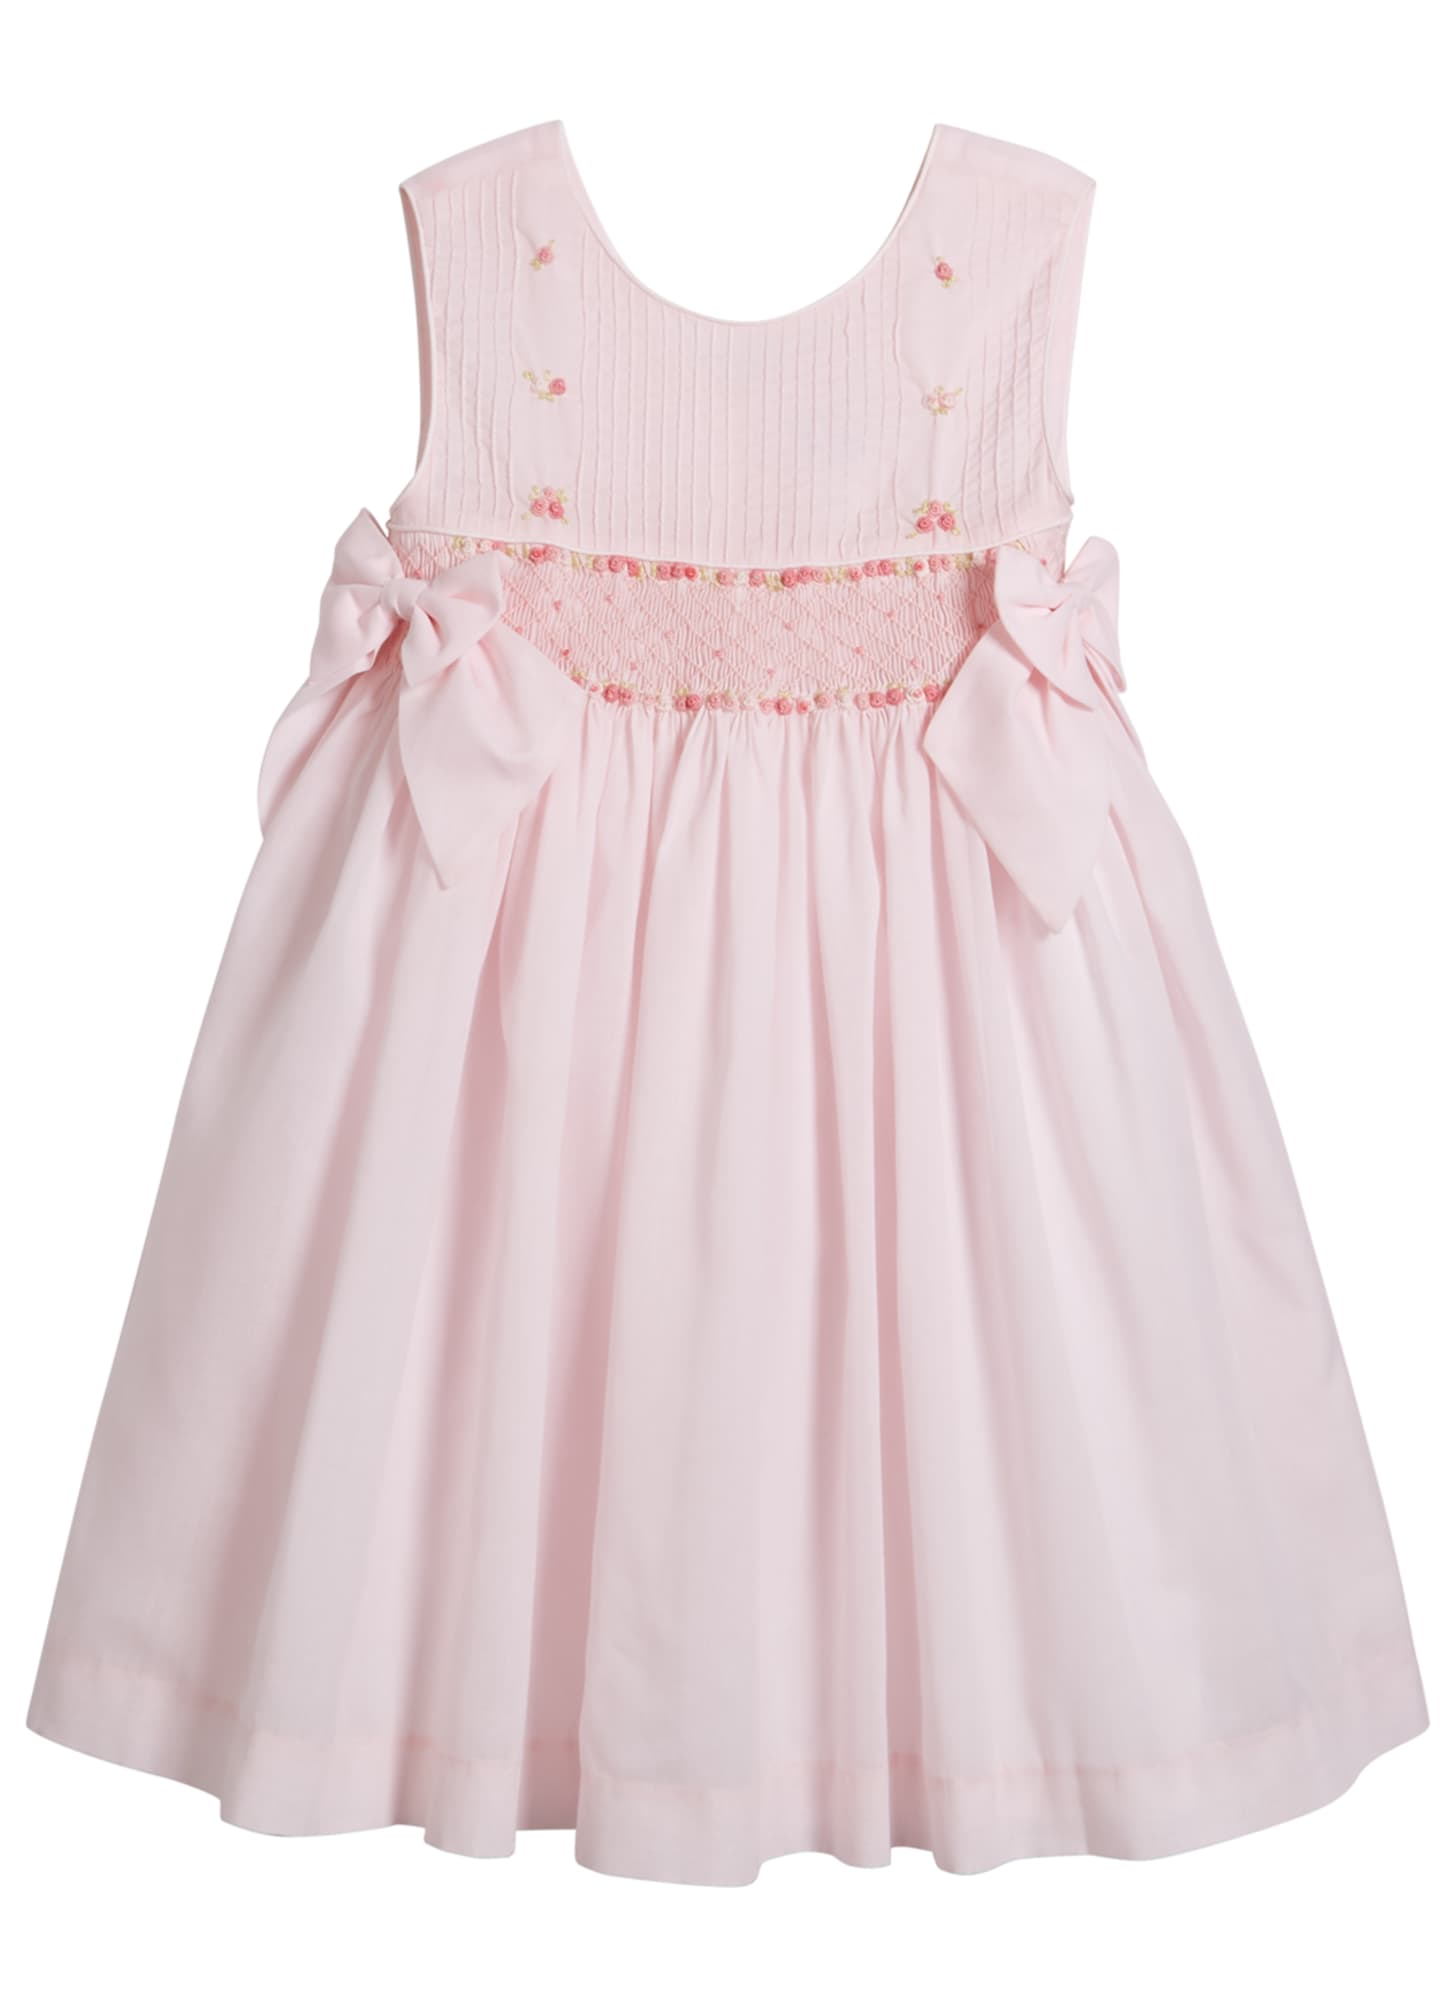 Luli & Me Sleeveless Smocked Bow Dress, Size